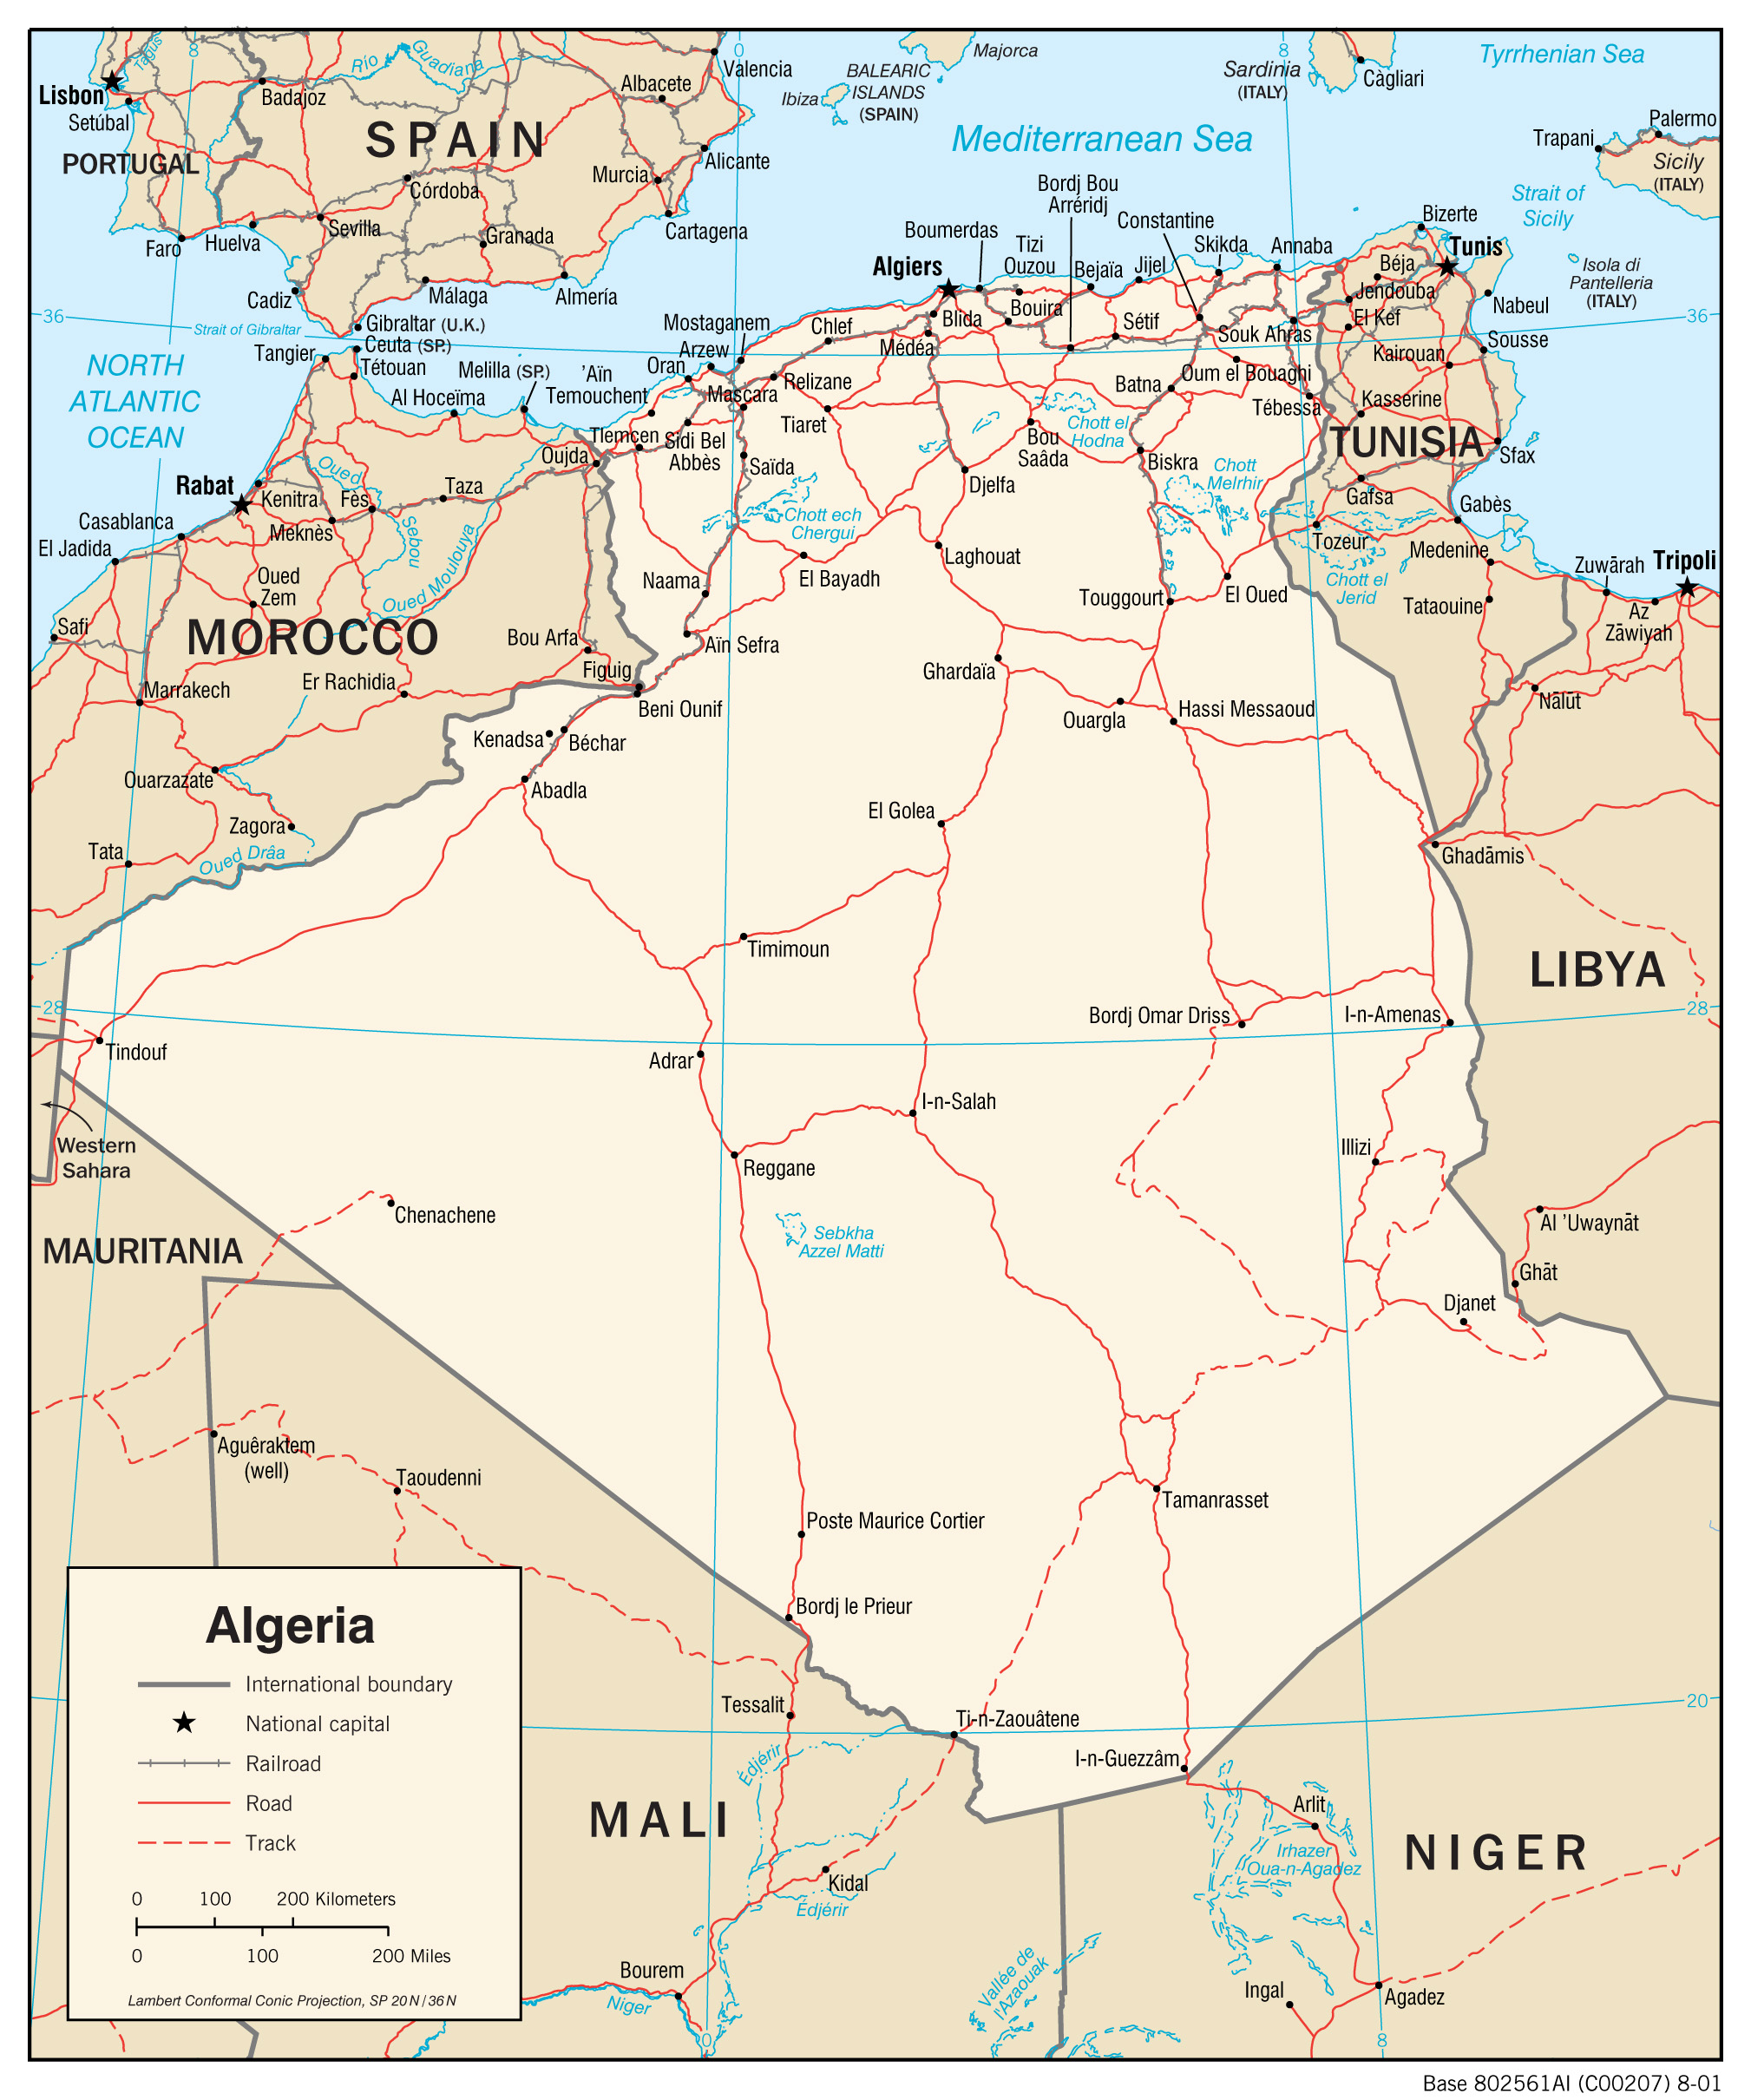 Algeria Maps - Perry-Castañeda Map Collection - UT Liry ... on map of yemen, map of middle east, map of mali, map of syria, map of laos, map of algiers, map lebanon, map of sudan, map of gibraltar, map of bahrain, map of angola, map of iraq, map of europe, map of tunisia, map of switzerland, map of africa, map of central america, map of great britain, map of libya, map of morocco,